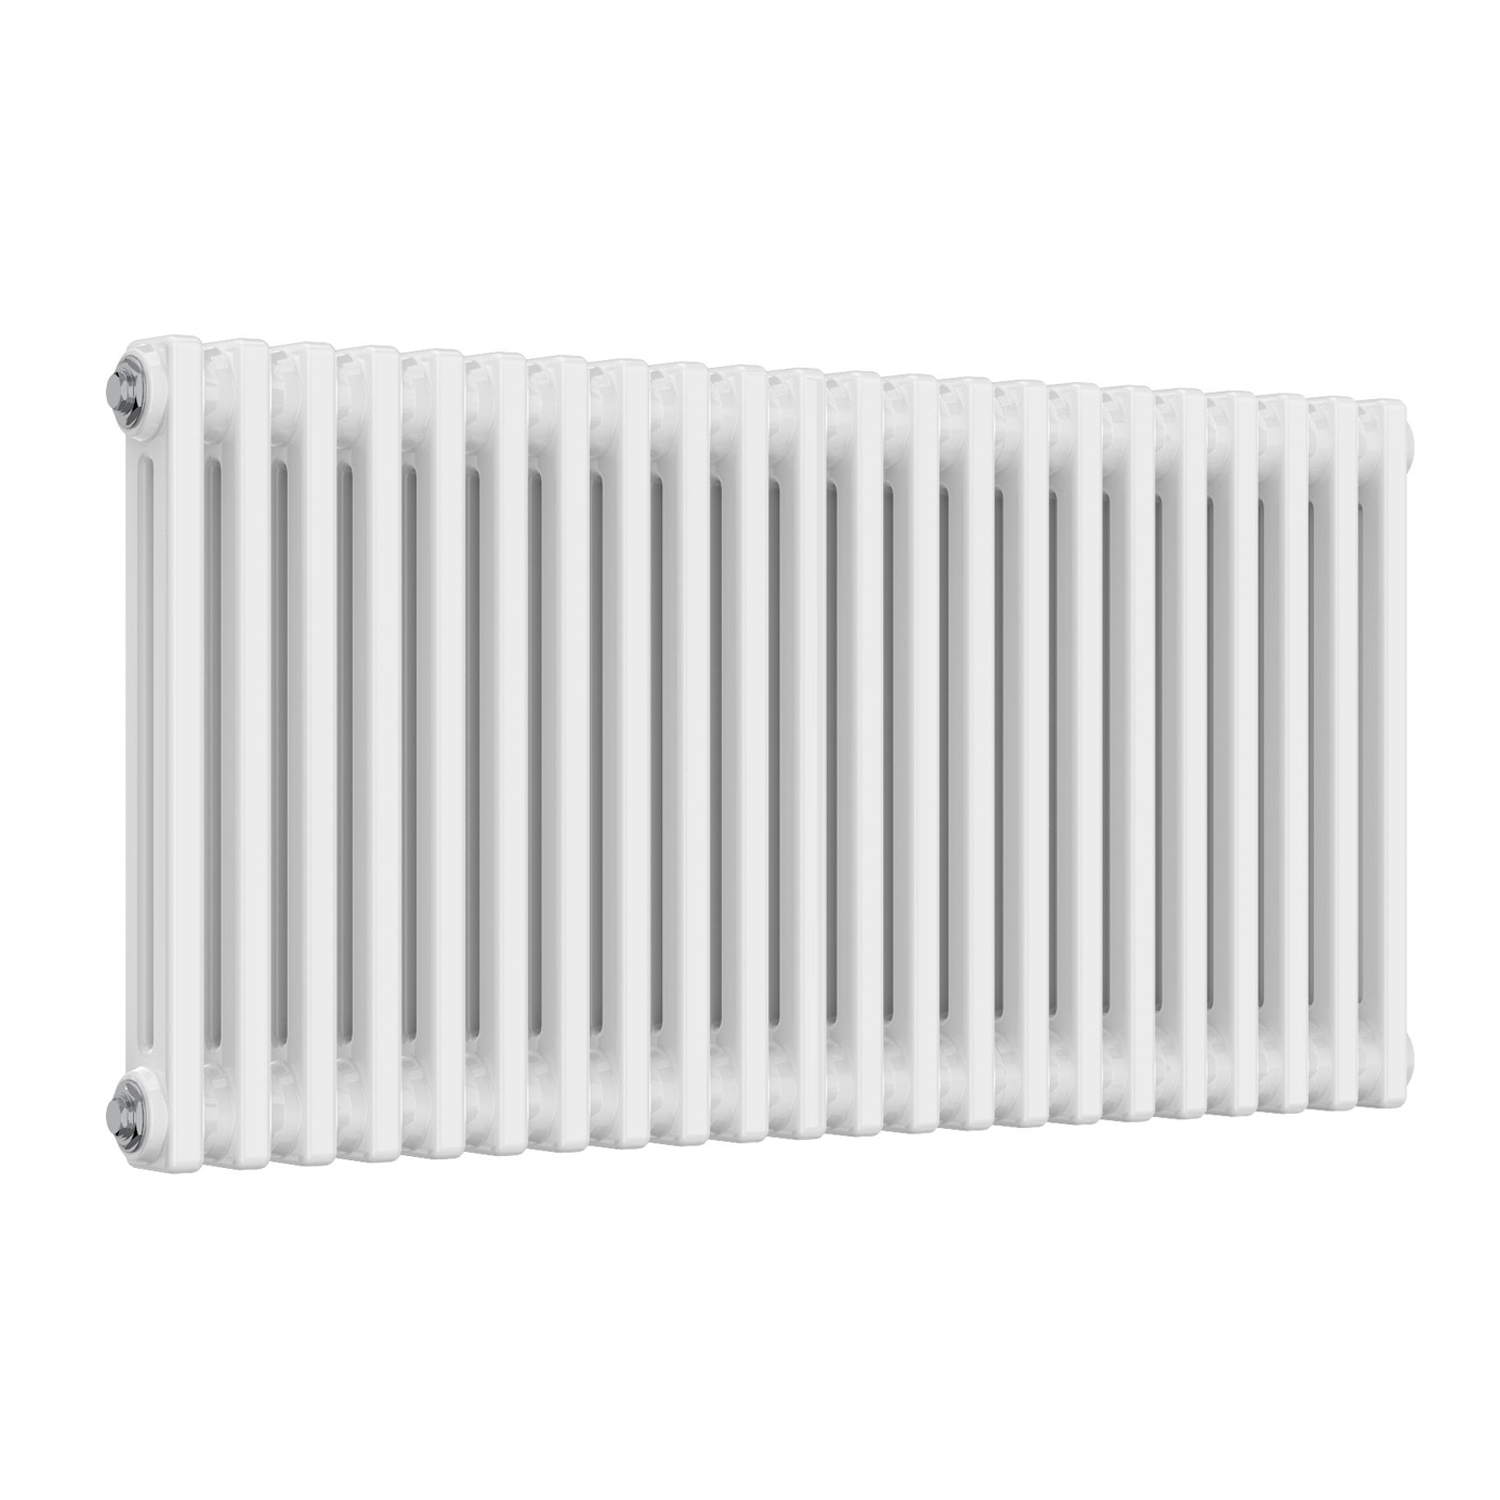 Stelrad Radical Radiator 600mm H x 400mm W Single Convector 10mm Straight TRV